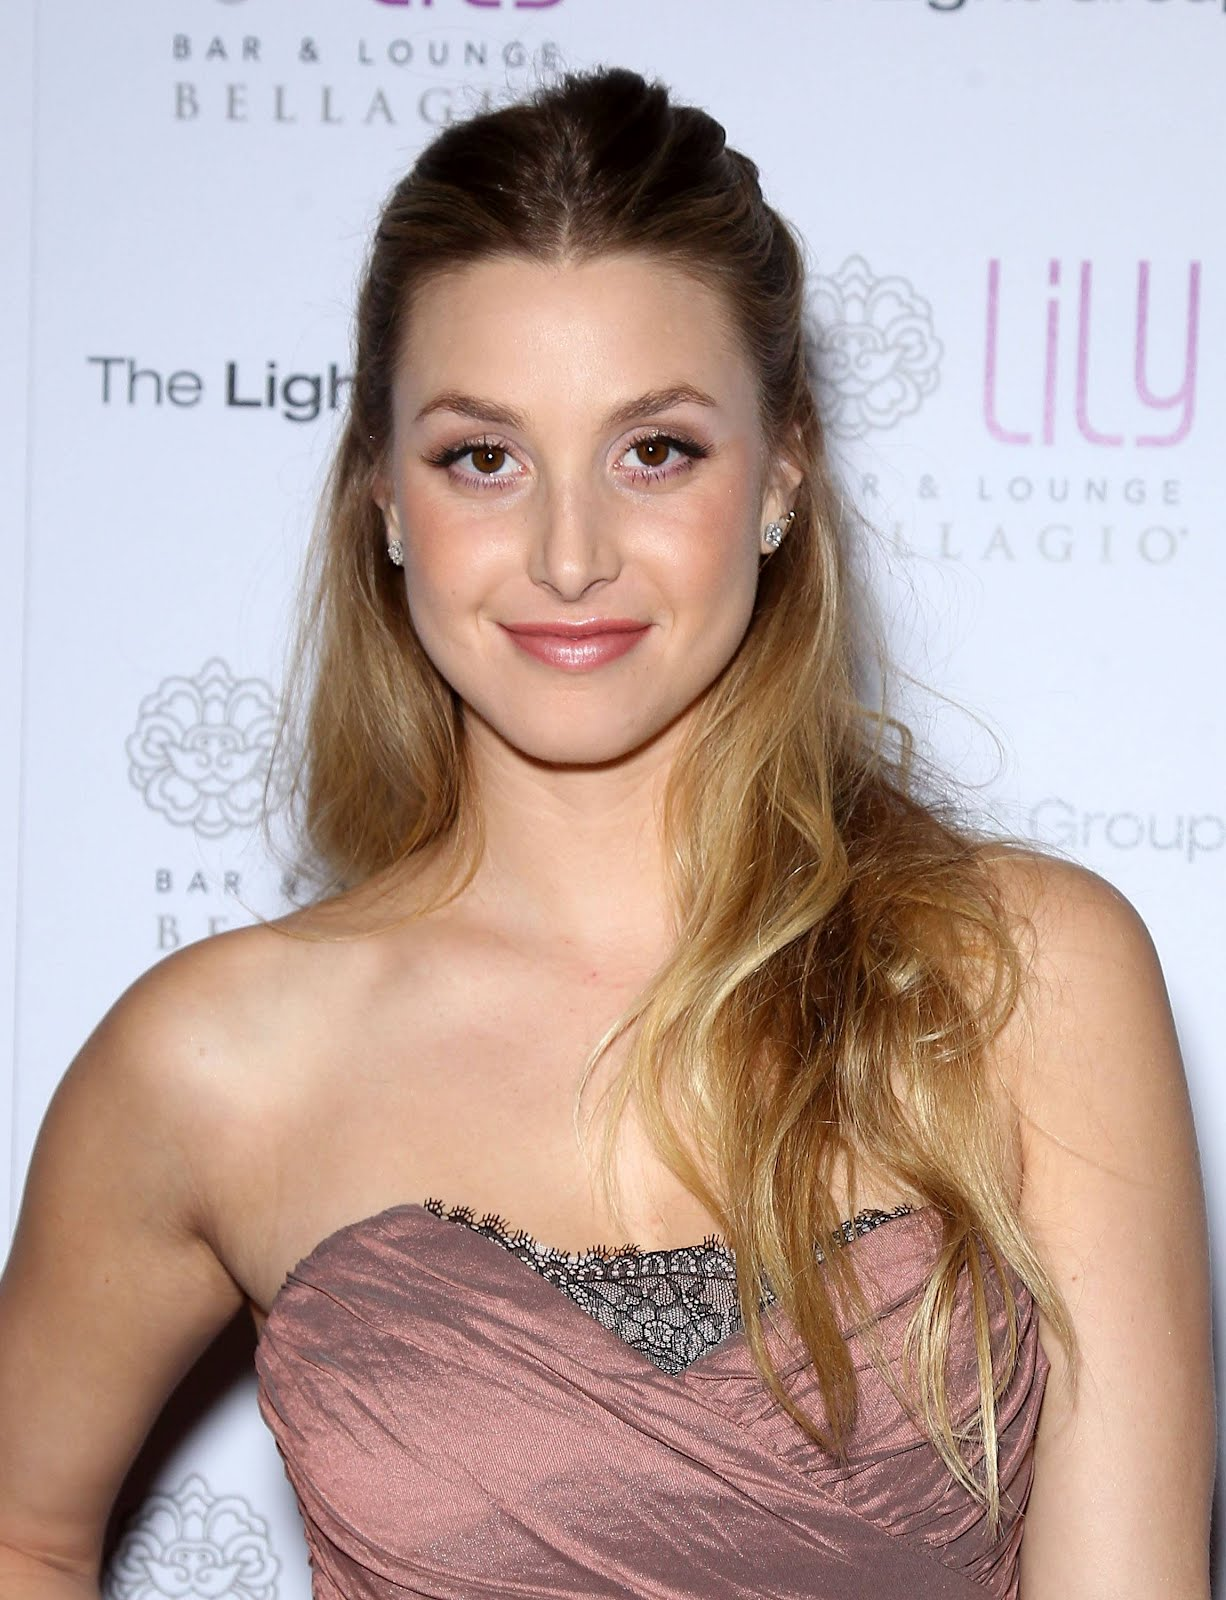 Whitney Port At The Lily Bar & Lounge Grand Opening In Las Vegas